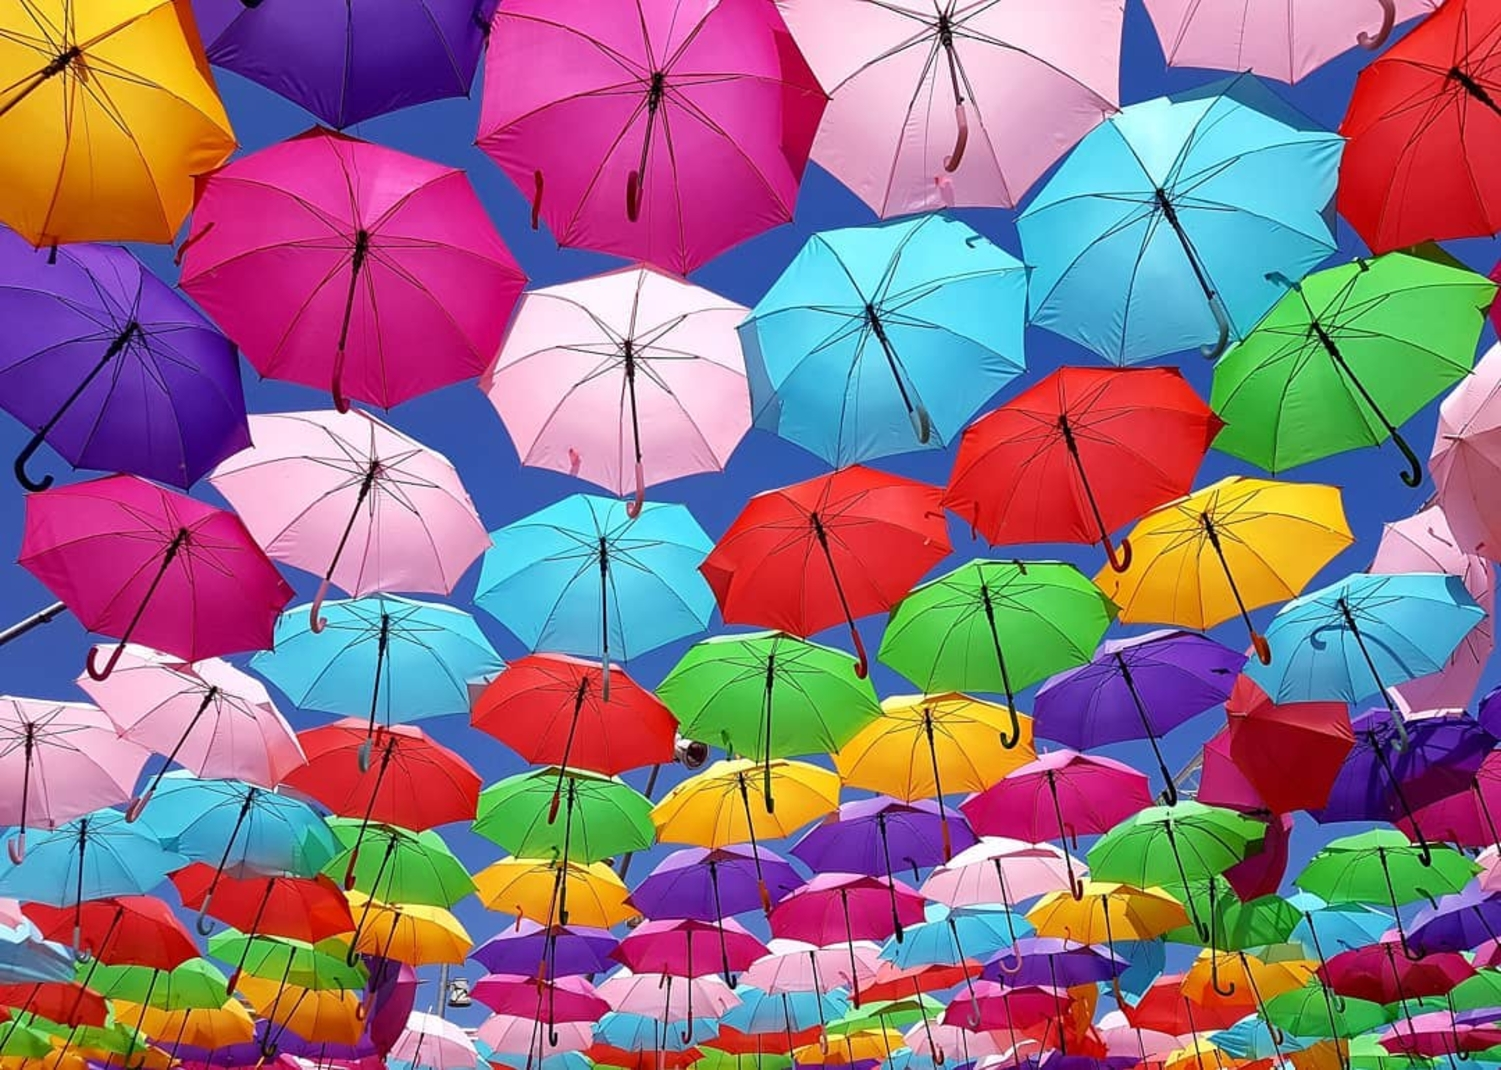 Umbrella Sky Project - Aix-en-Provence'19